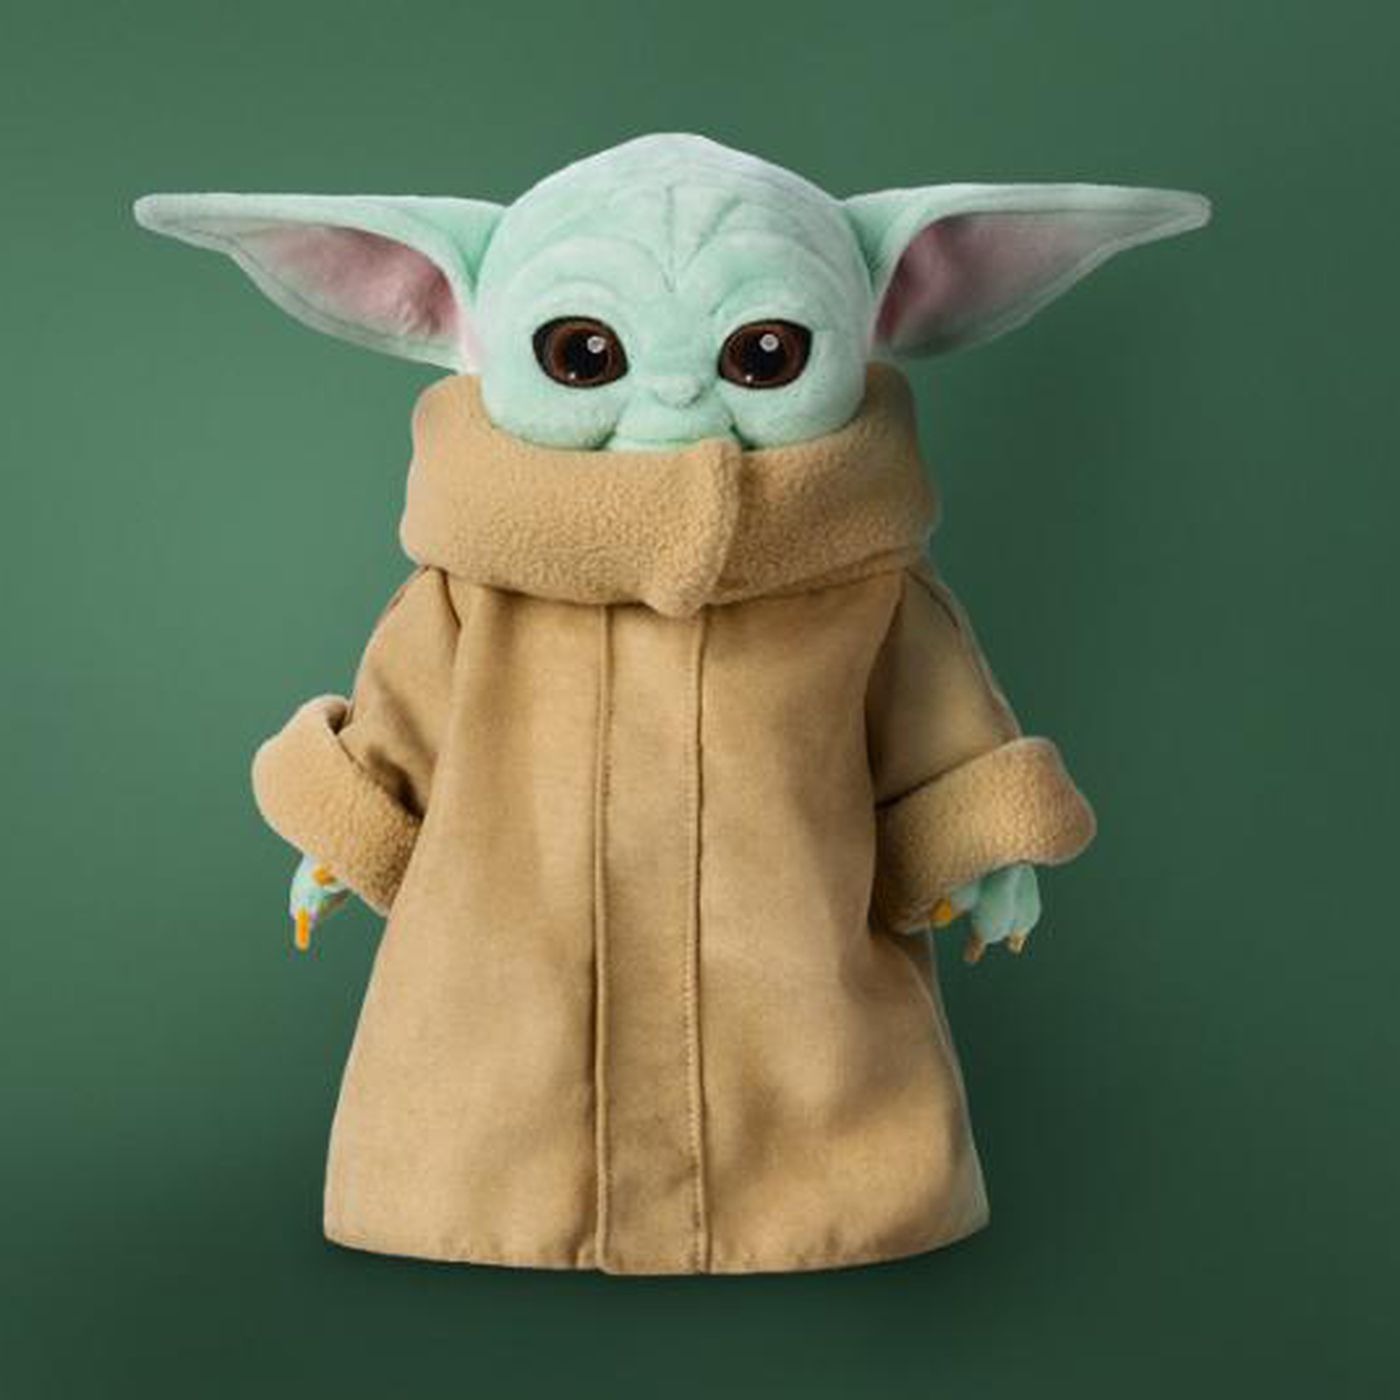 Disney Is Selling A Baby Yoda Plush But It Won T Arrive Until March 2020 The Verge